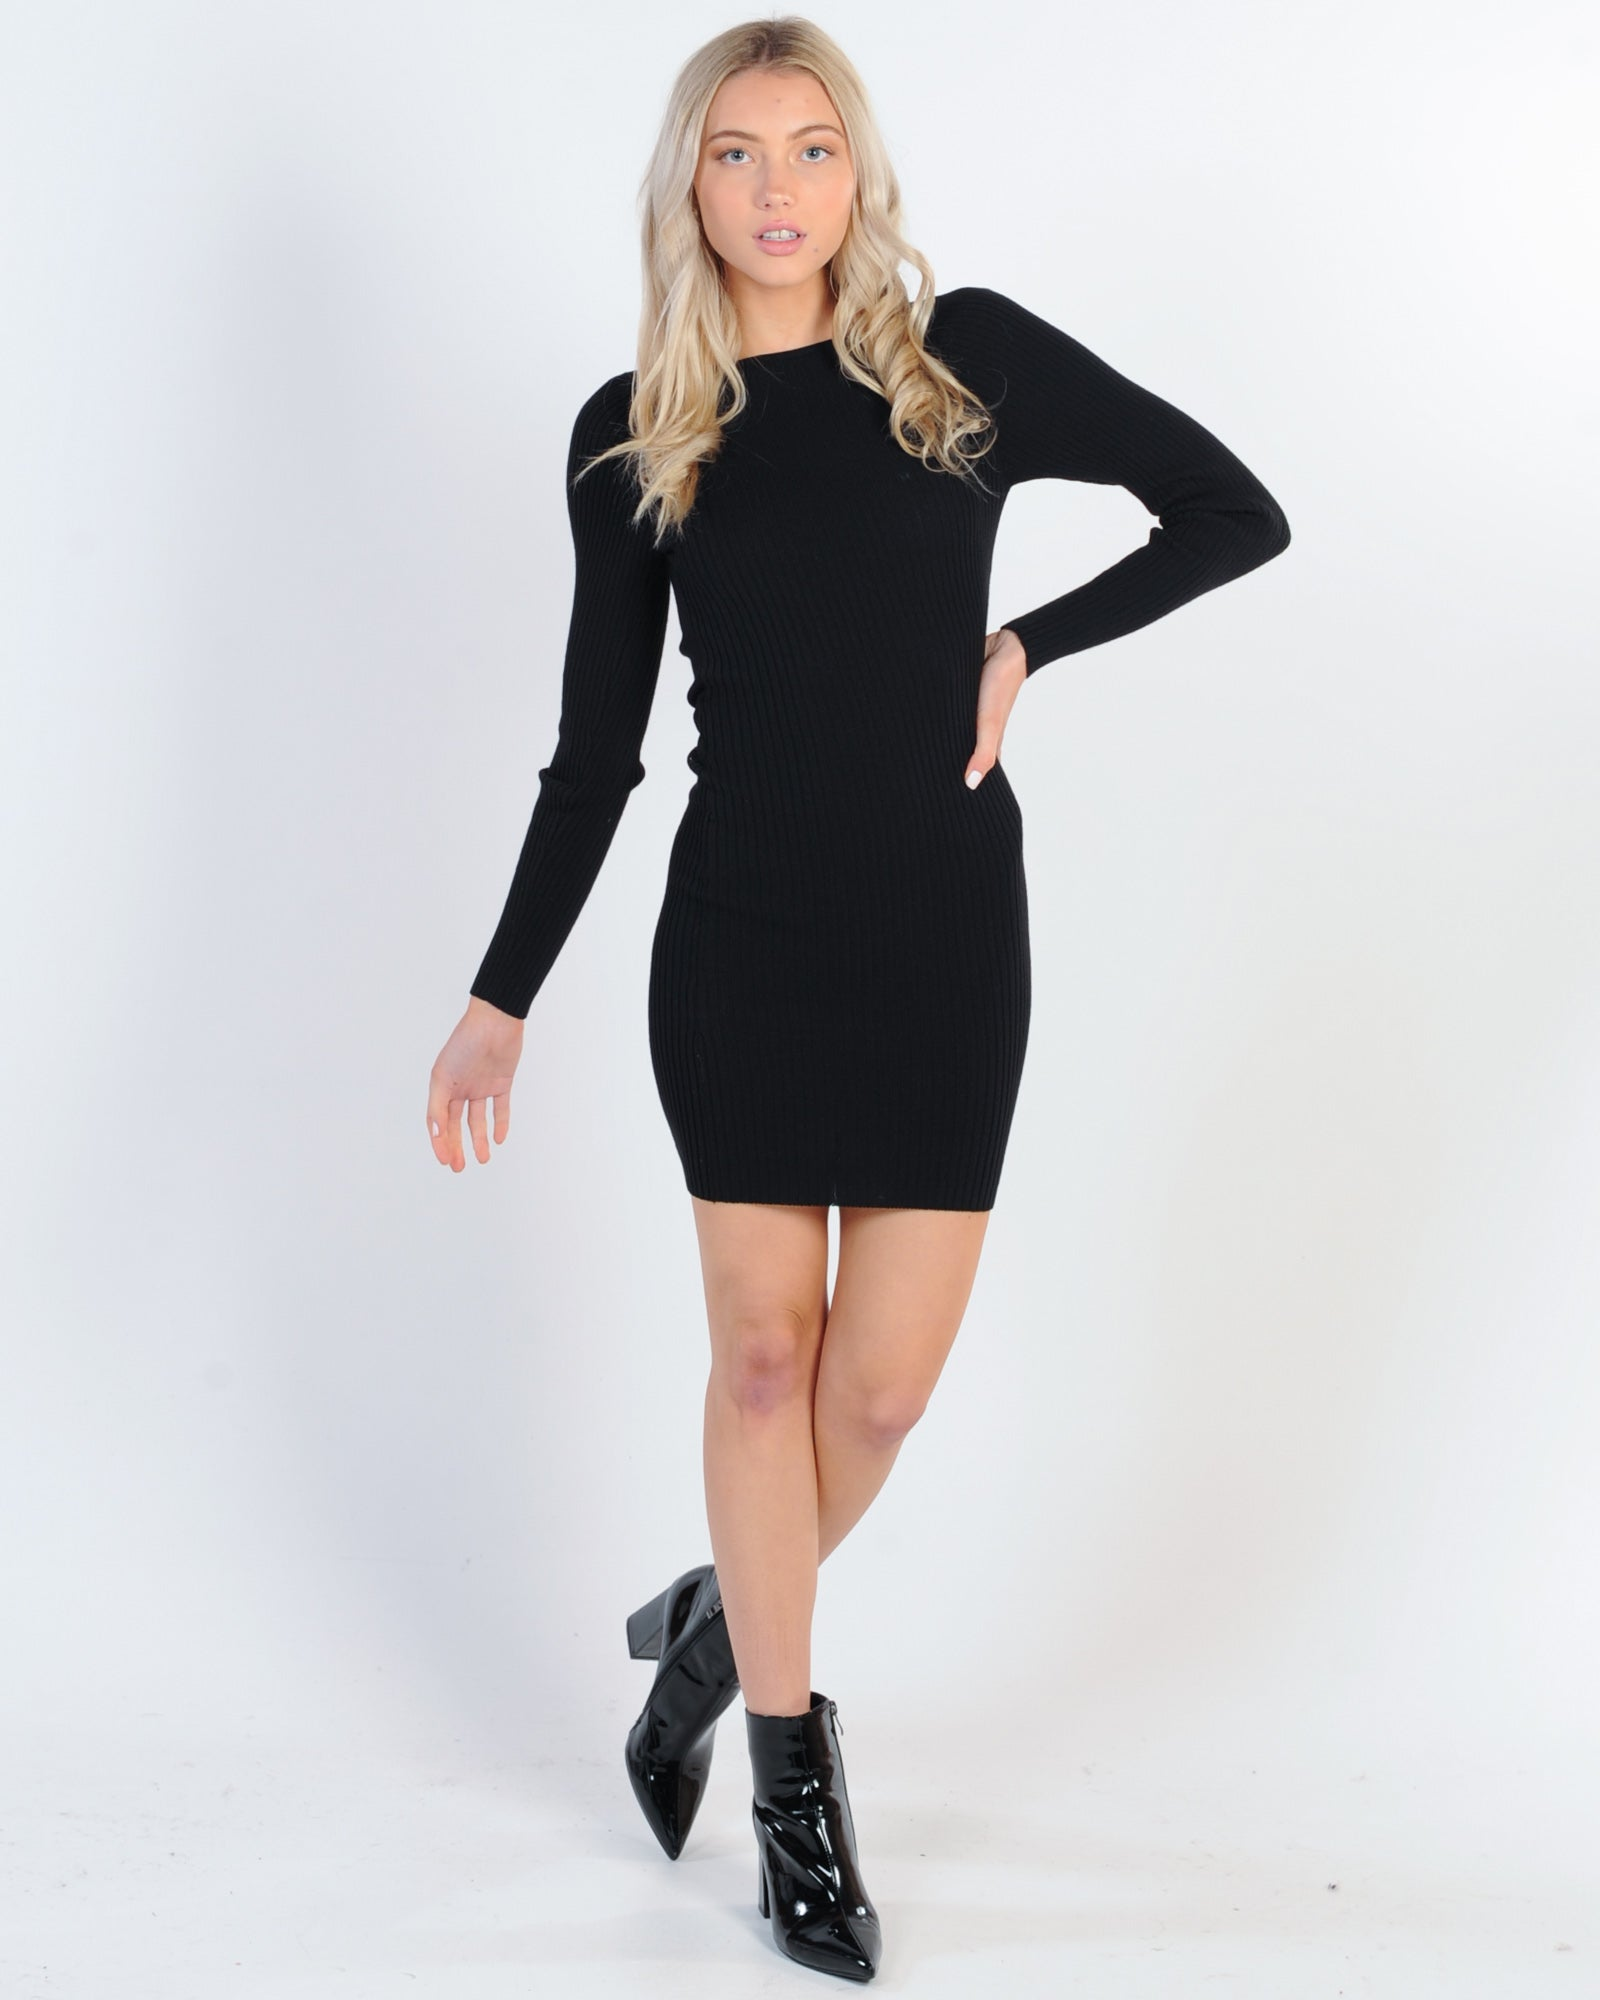 Drinks With Friends Dress - Black